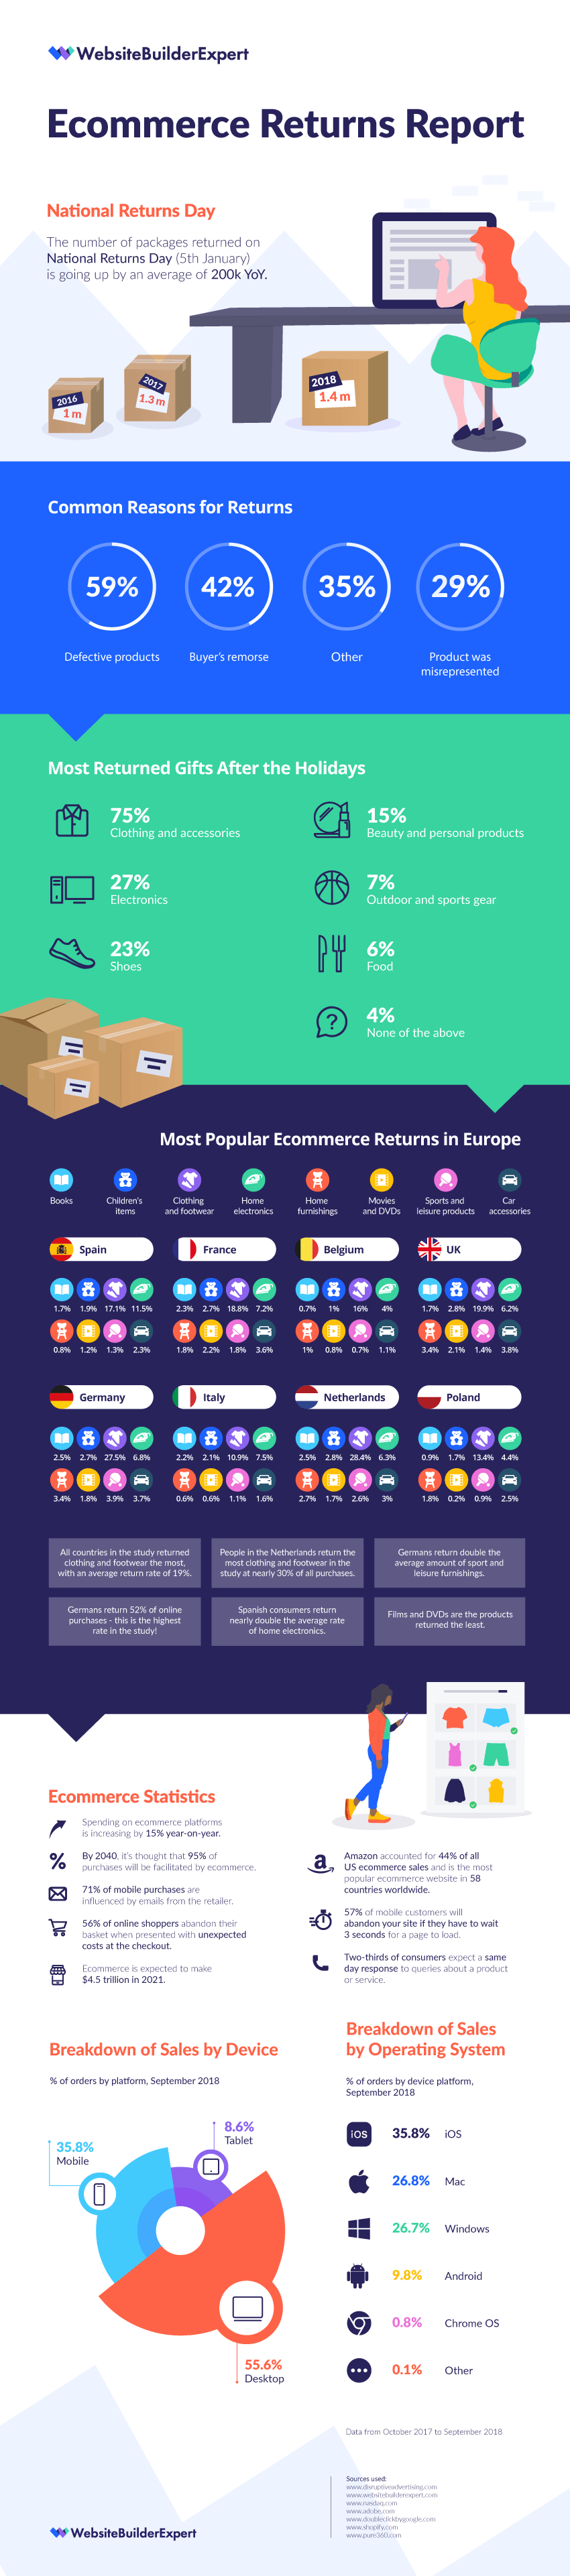 ecommerce return statistics